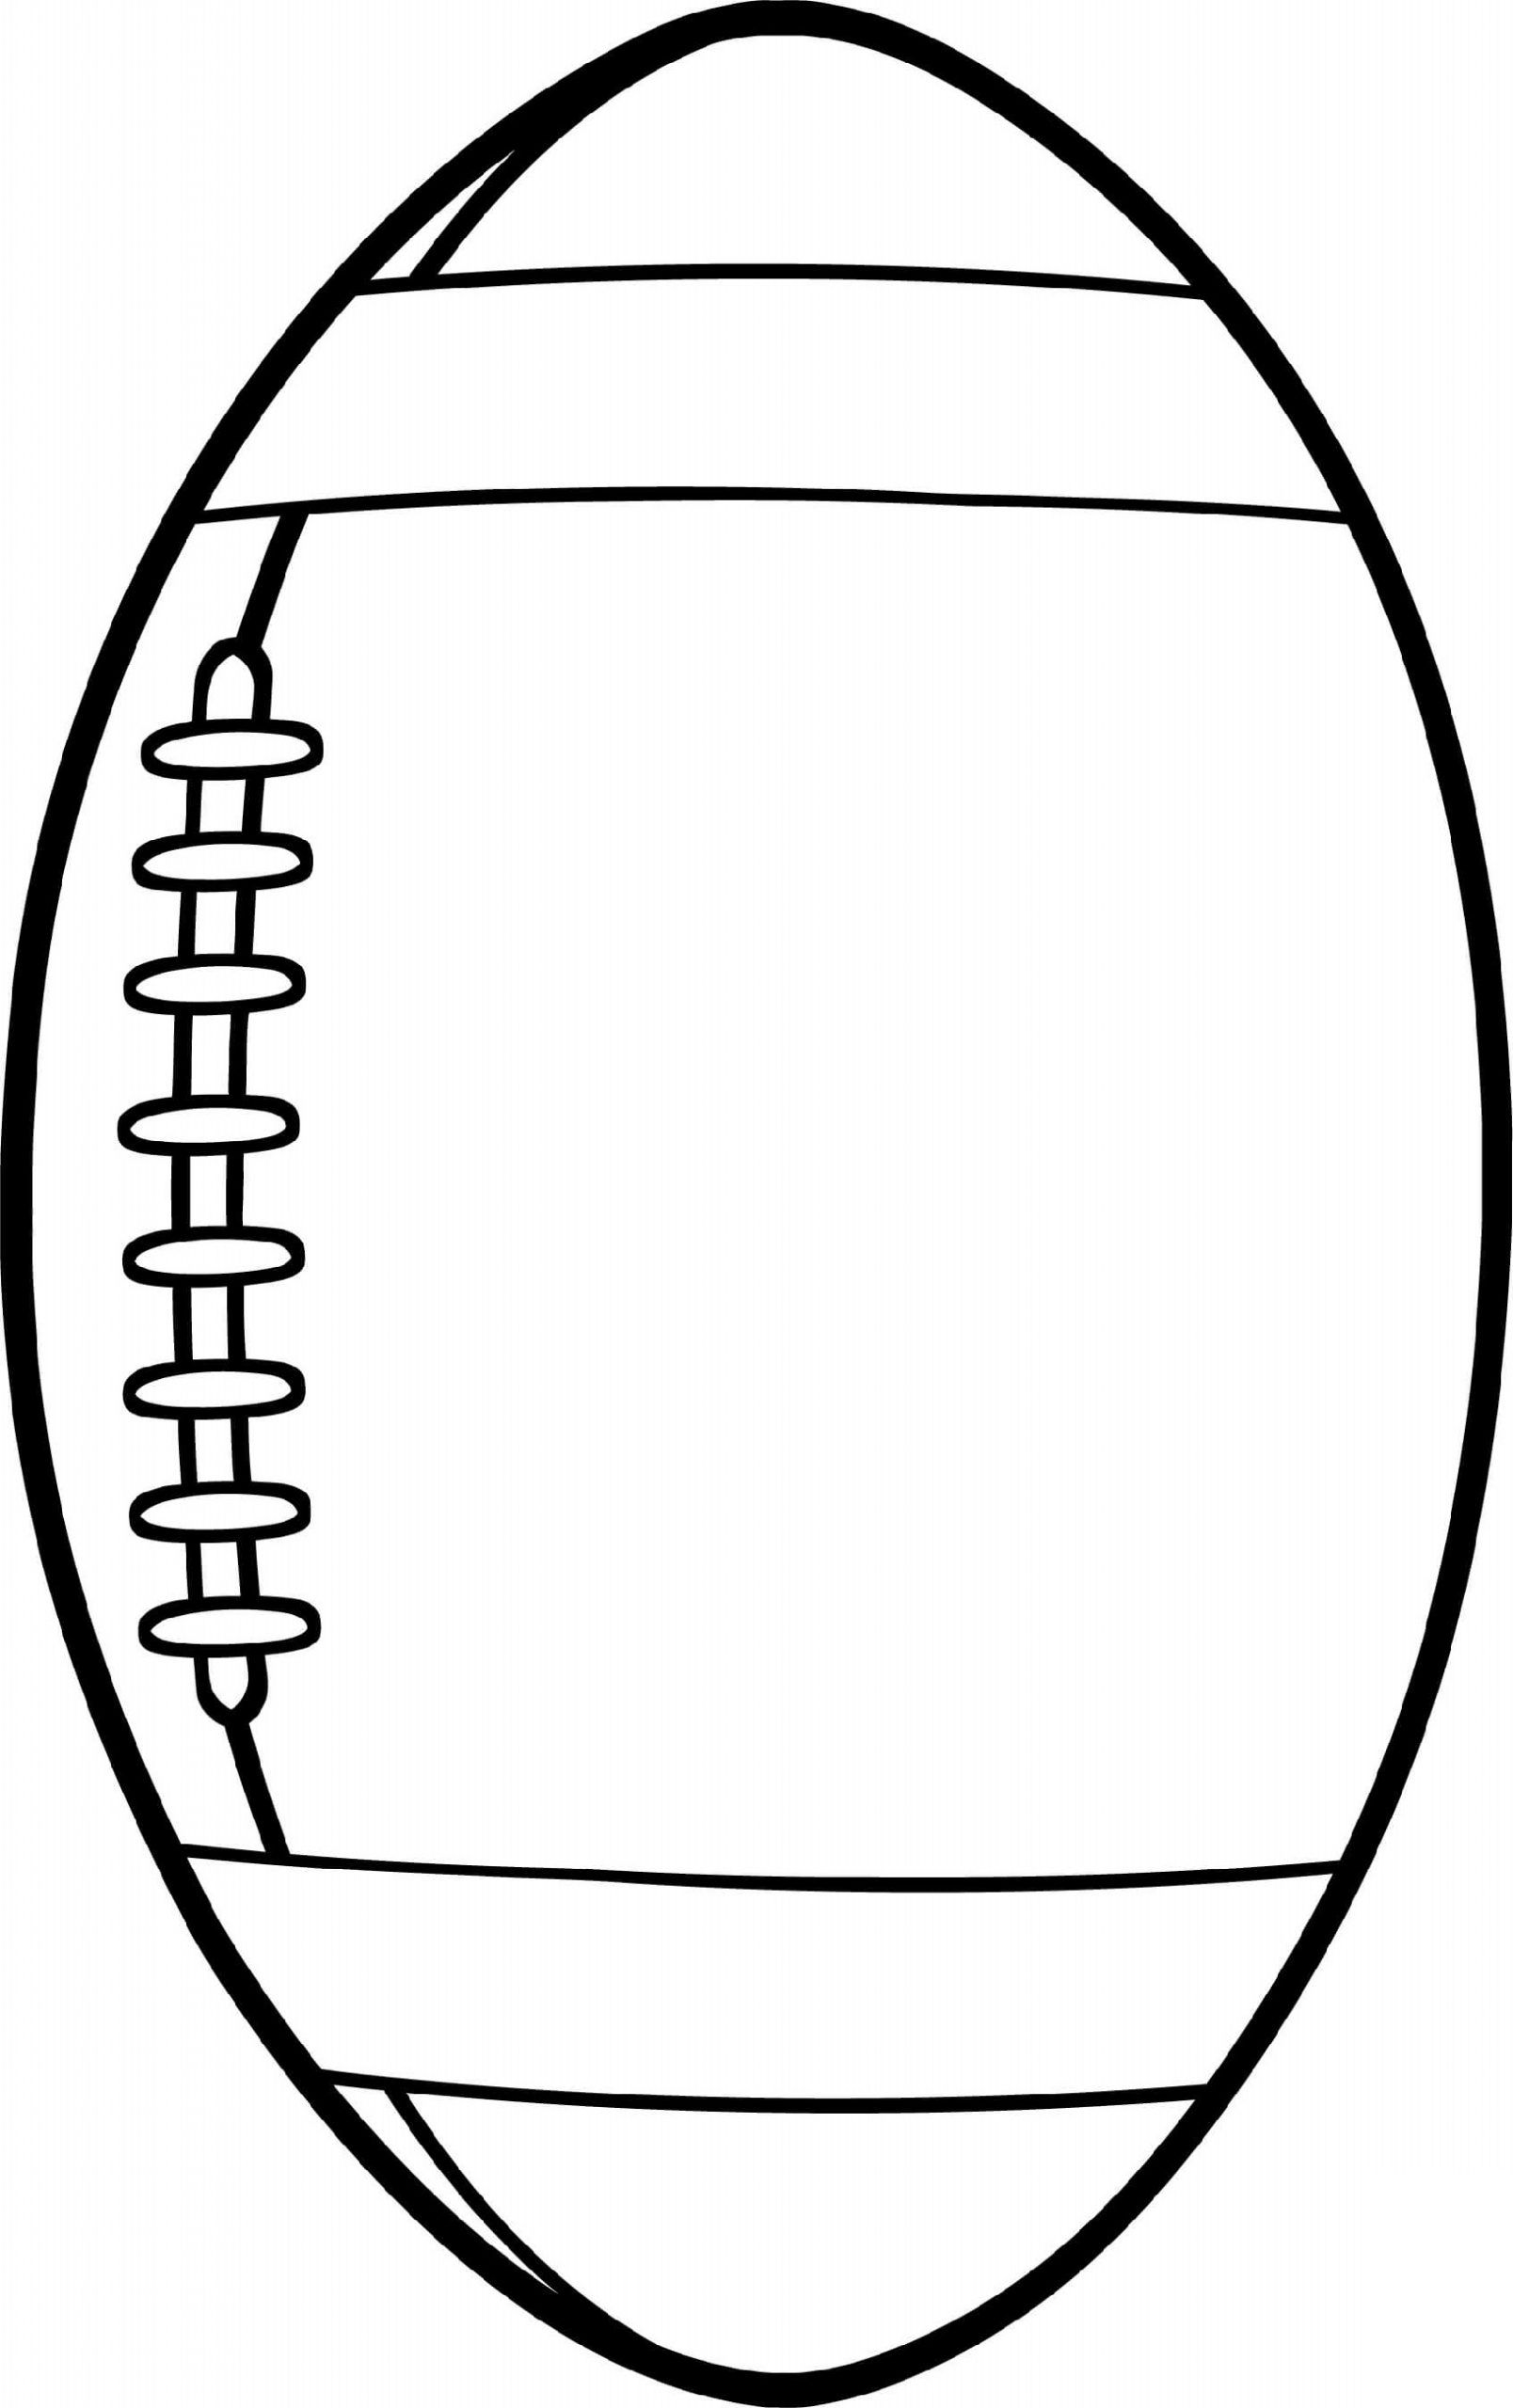 Football Coloring Pages For Kids Football Coloring Pages Coloring Pages For Kids Coloring Pages